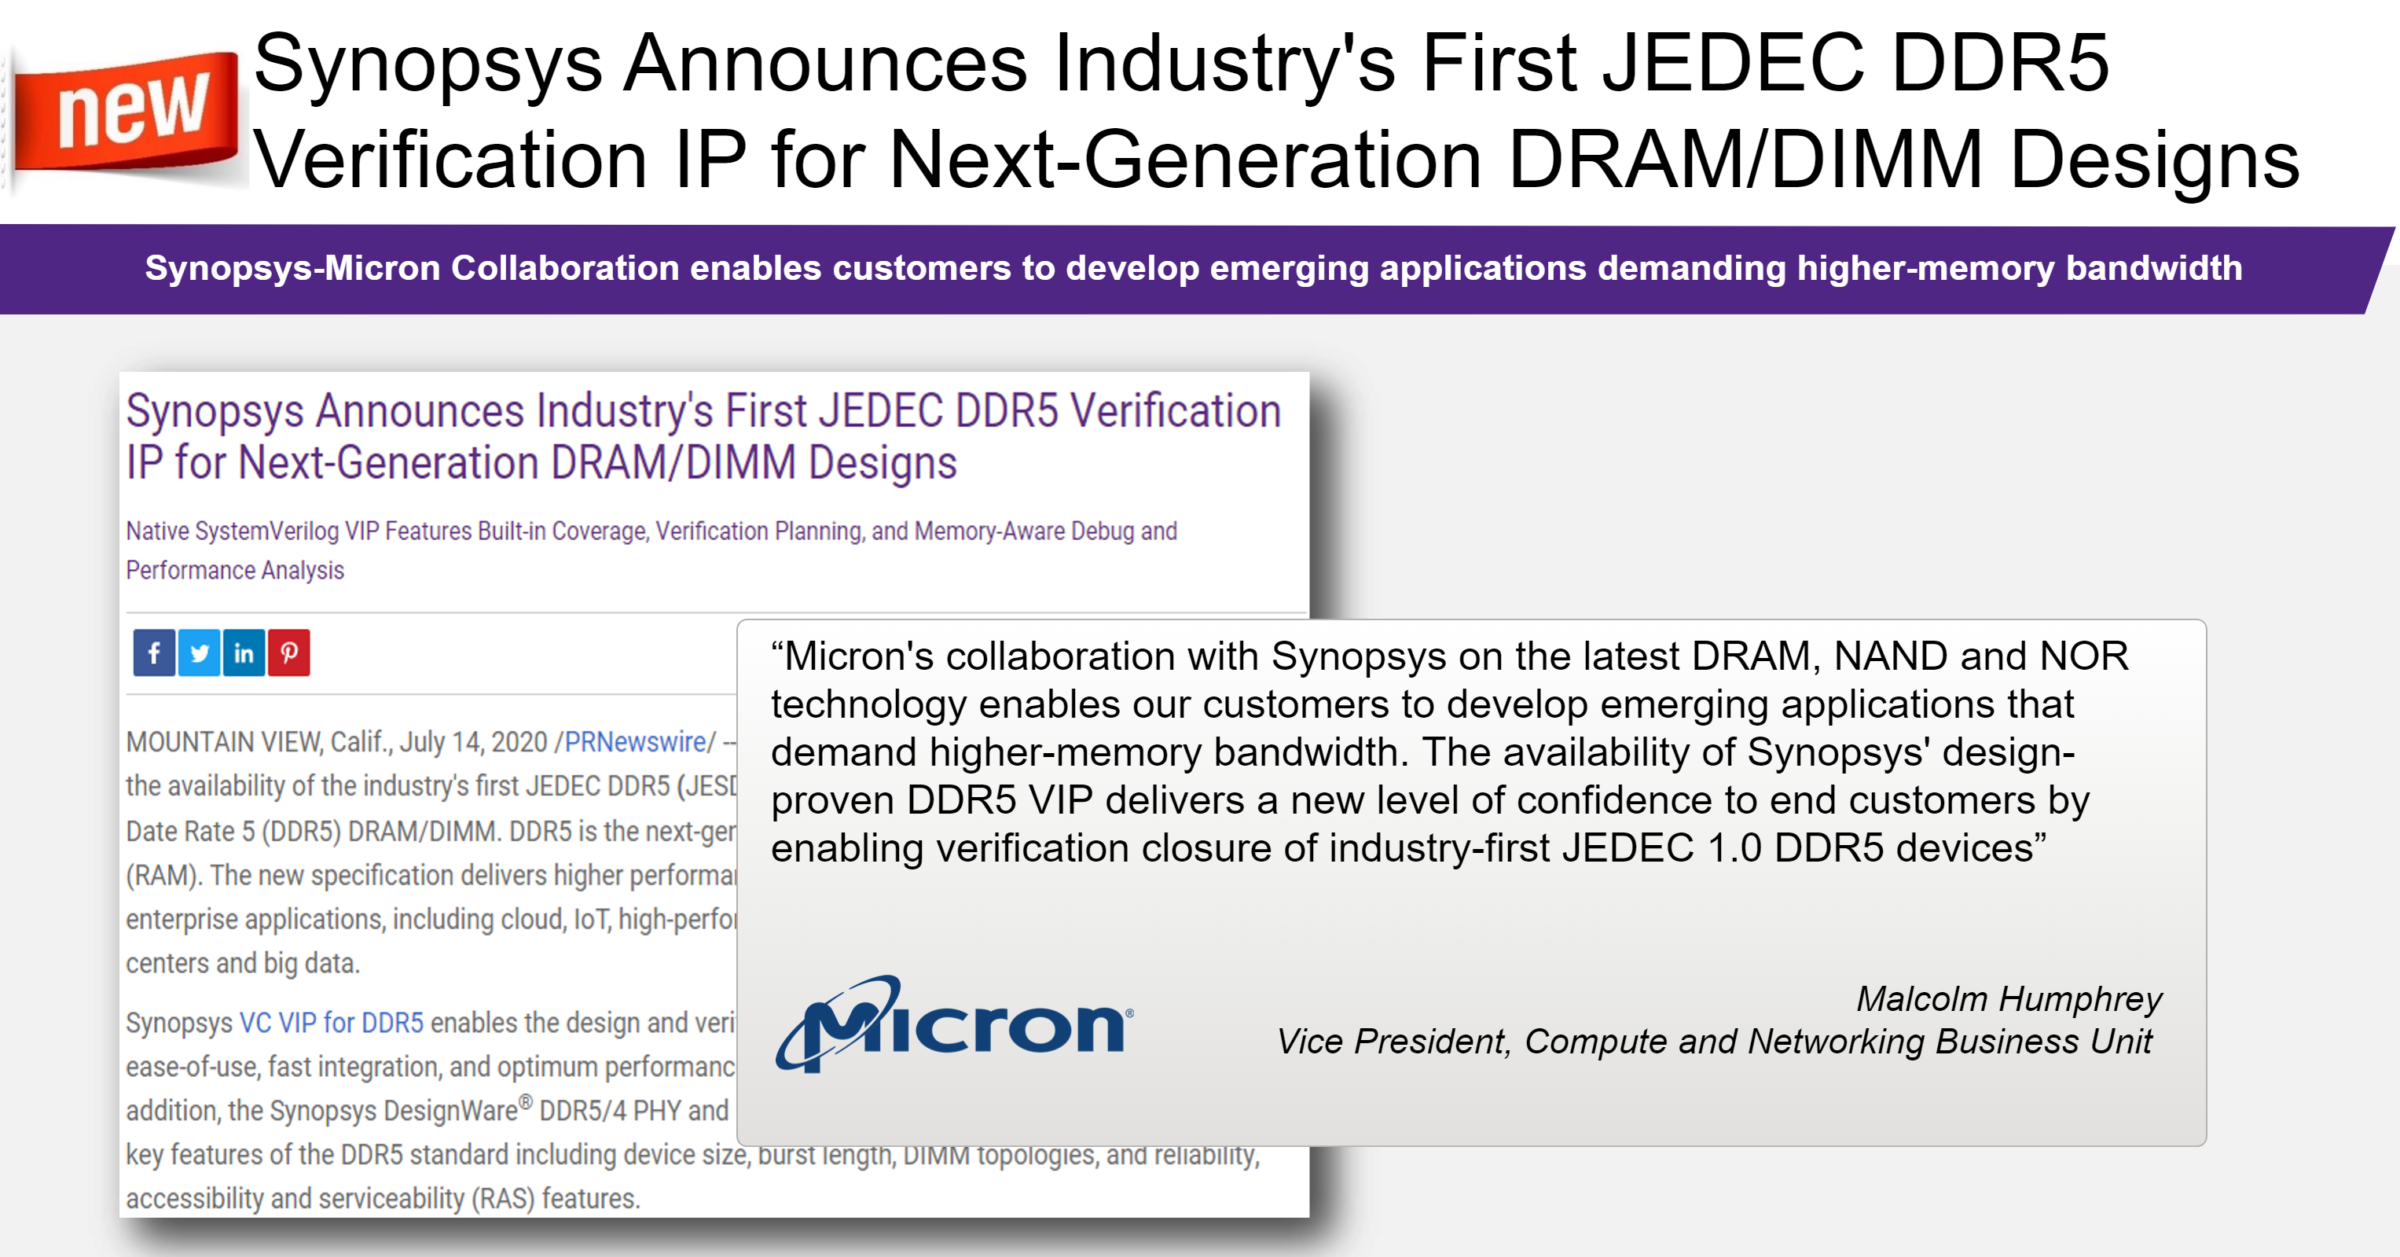 The wait is over – JEDEC Announces JESD79-5, DDR5 SDRAM VIP for High Performance Computing